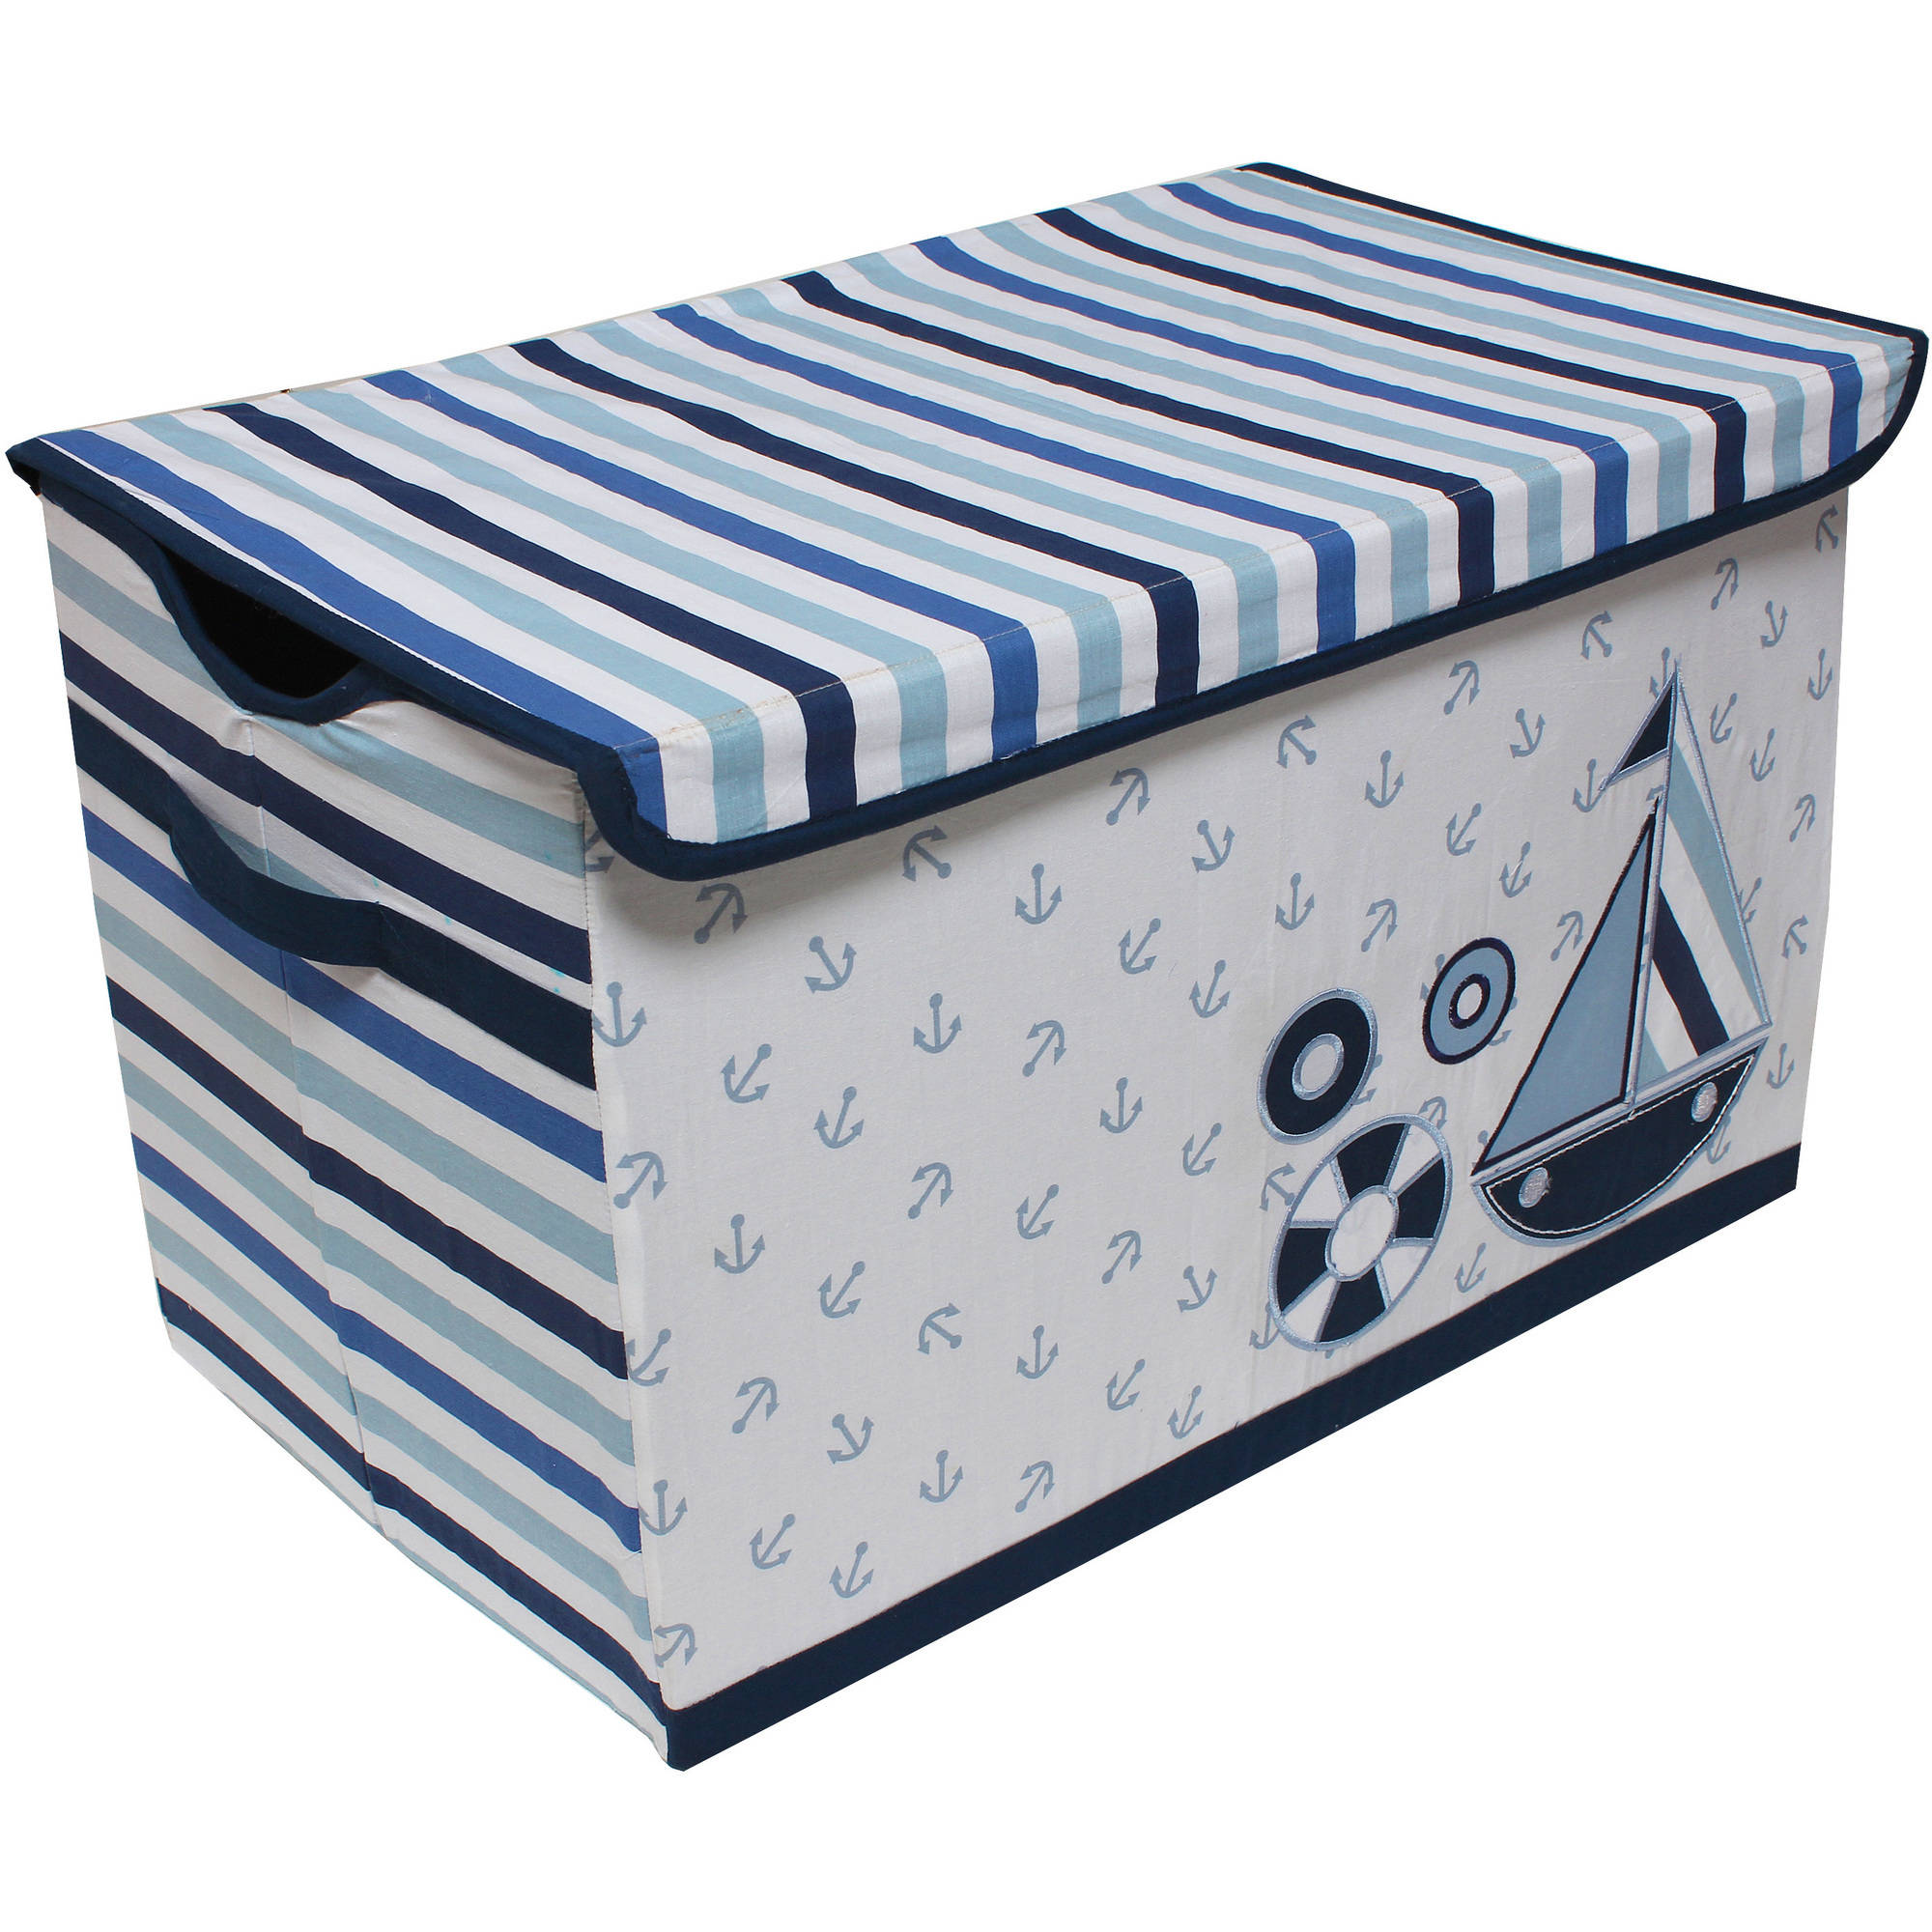 Bacati Little Sailor Cotton Percale Fabric covered Storage, Toy Chest, 24.5 L x 15 W x 14 H inches by